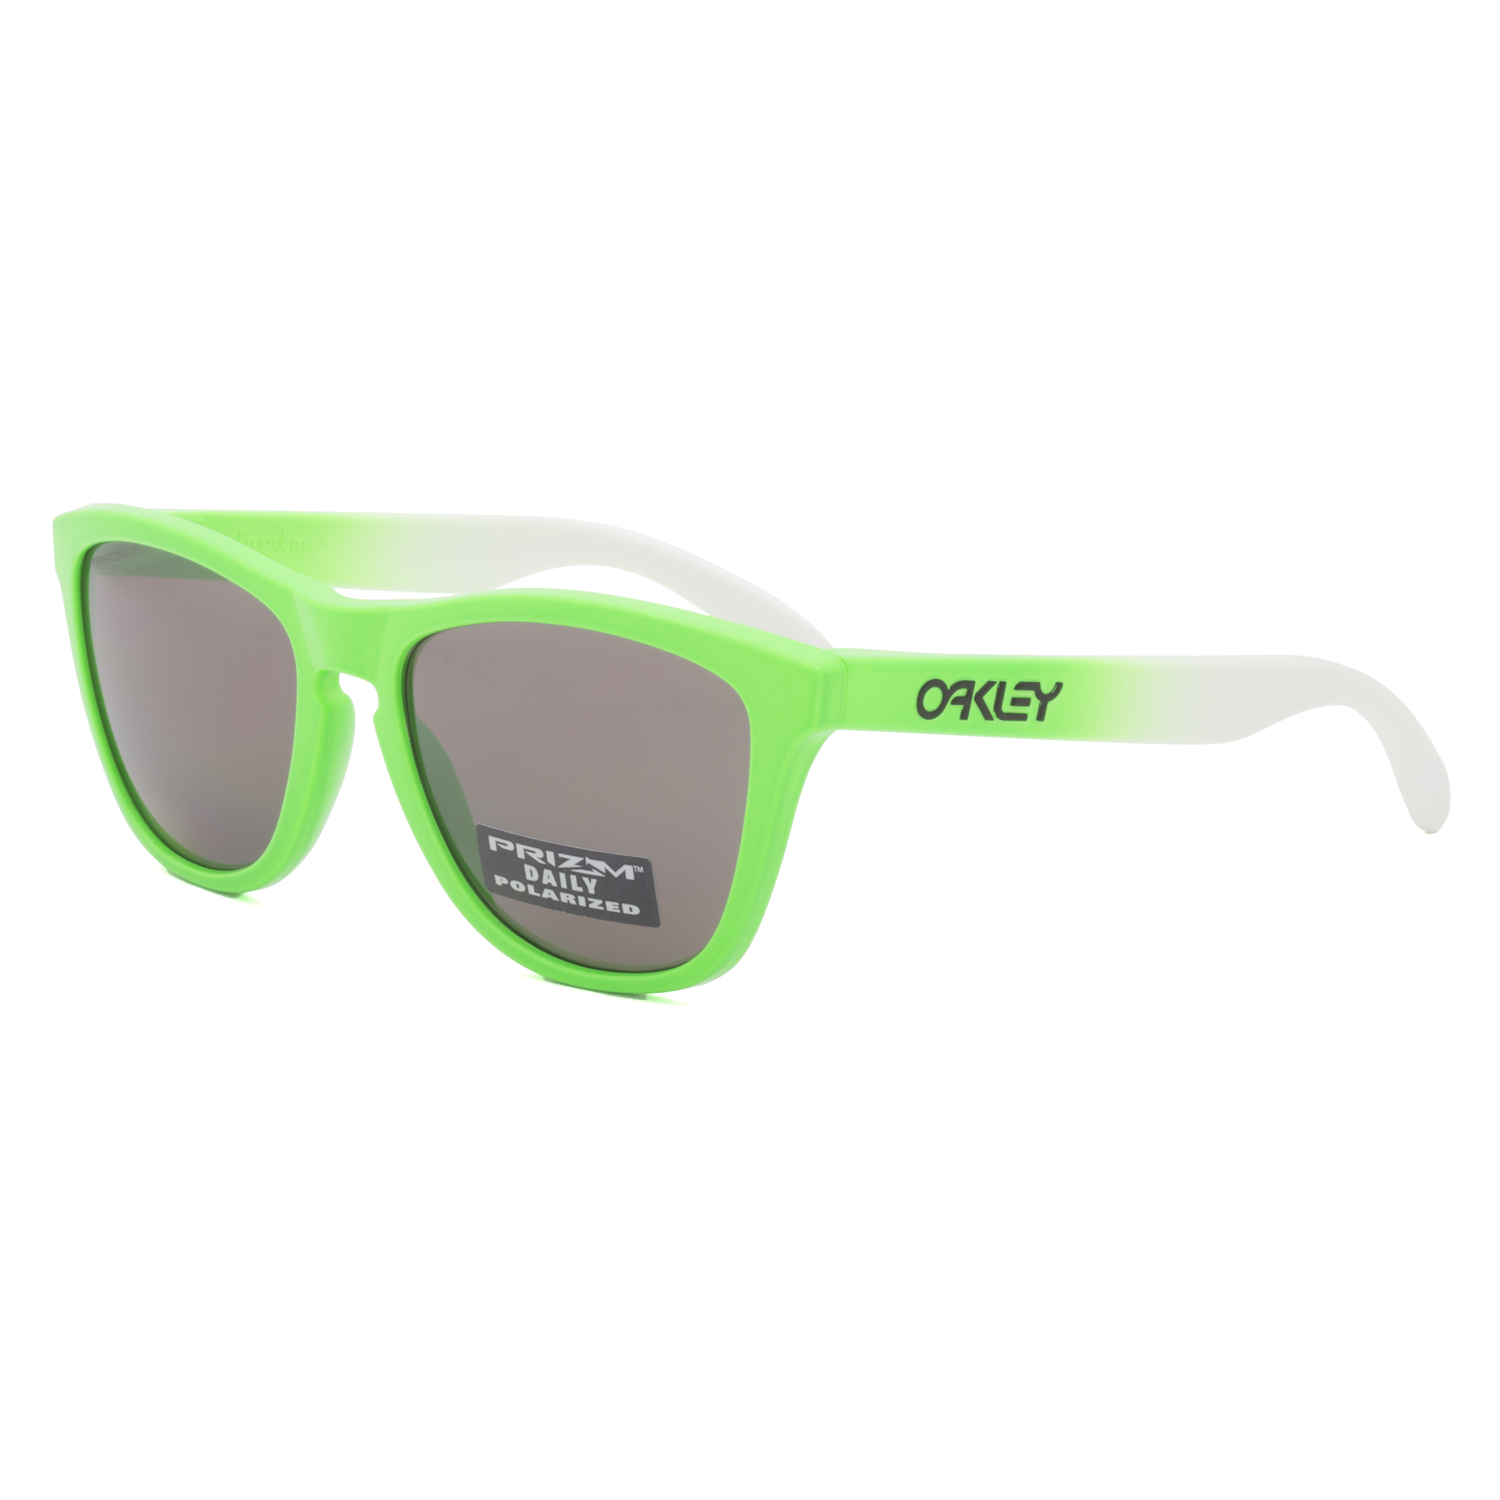 a6897680f75 Details about Oakley Frogskins Sunglasses OO9013-99 Green Fade   Prizm  Daily Polarized